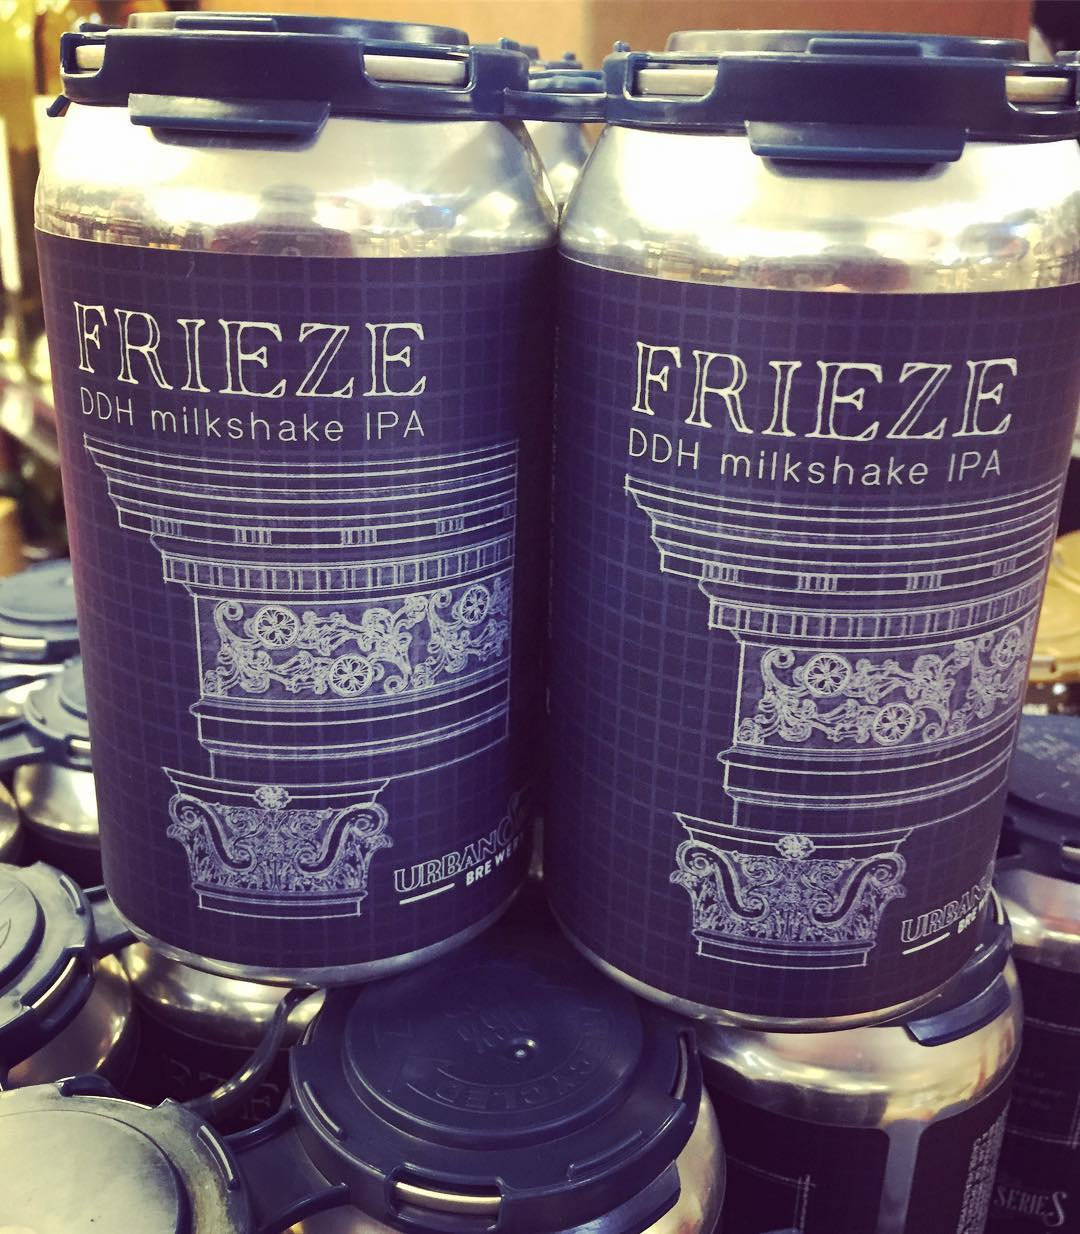 @urbansouthbeer Frieze DDH Milkshake IPA is now in stock at our Perkins Rd location! Limit…